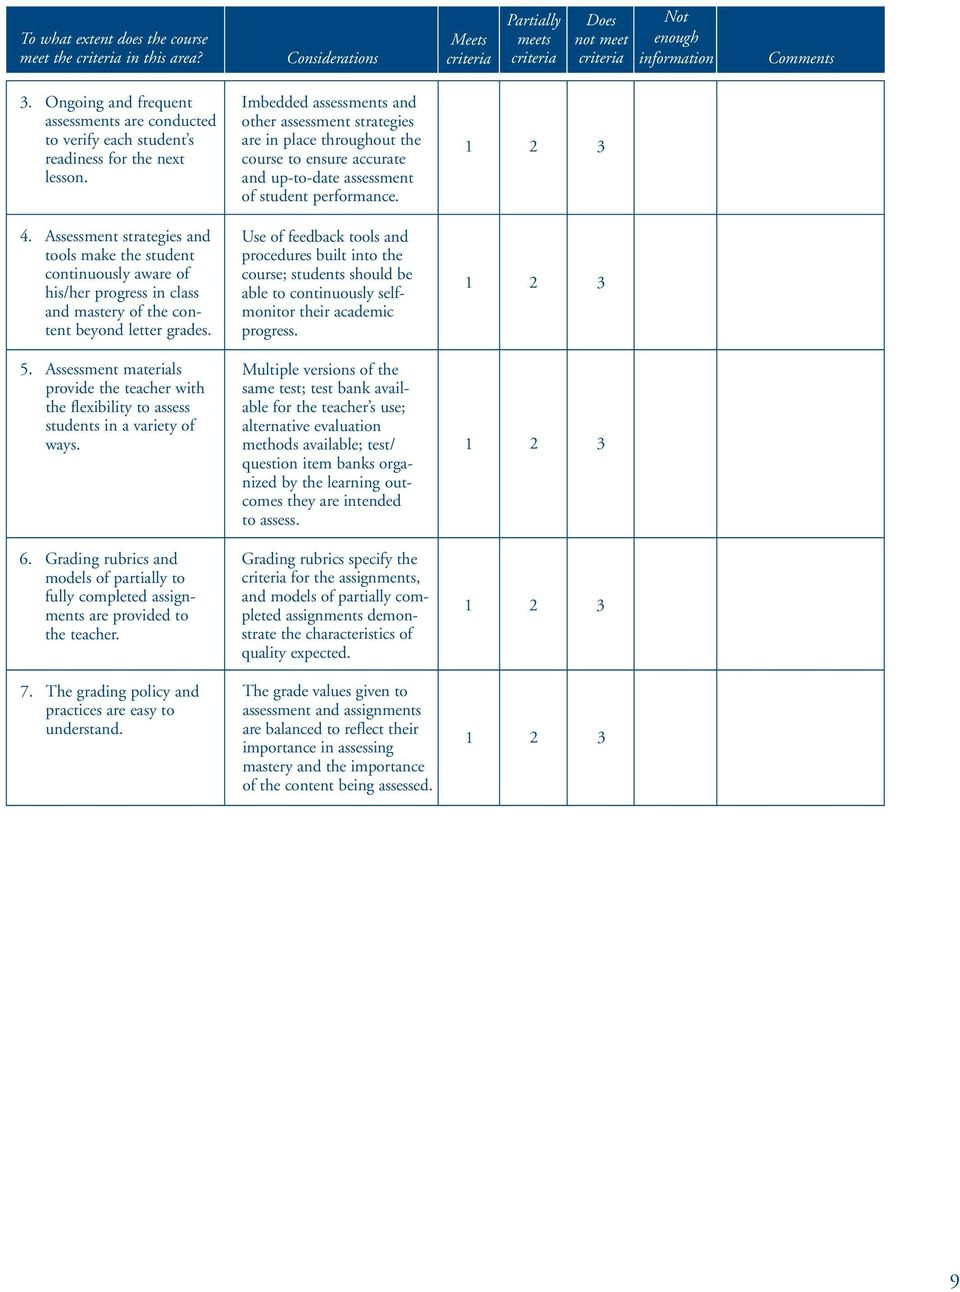 Assessment materials provide the teacher with the flexibility to assess students in a variety of ways. 6.